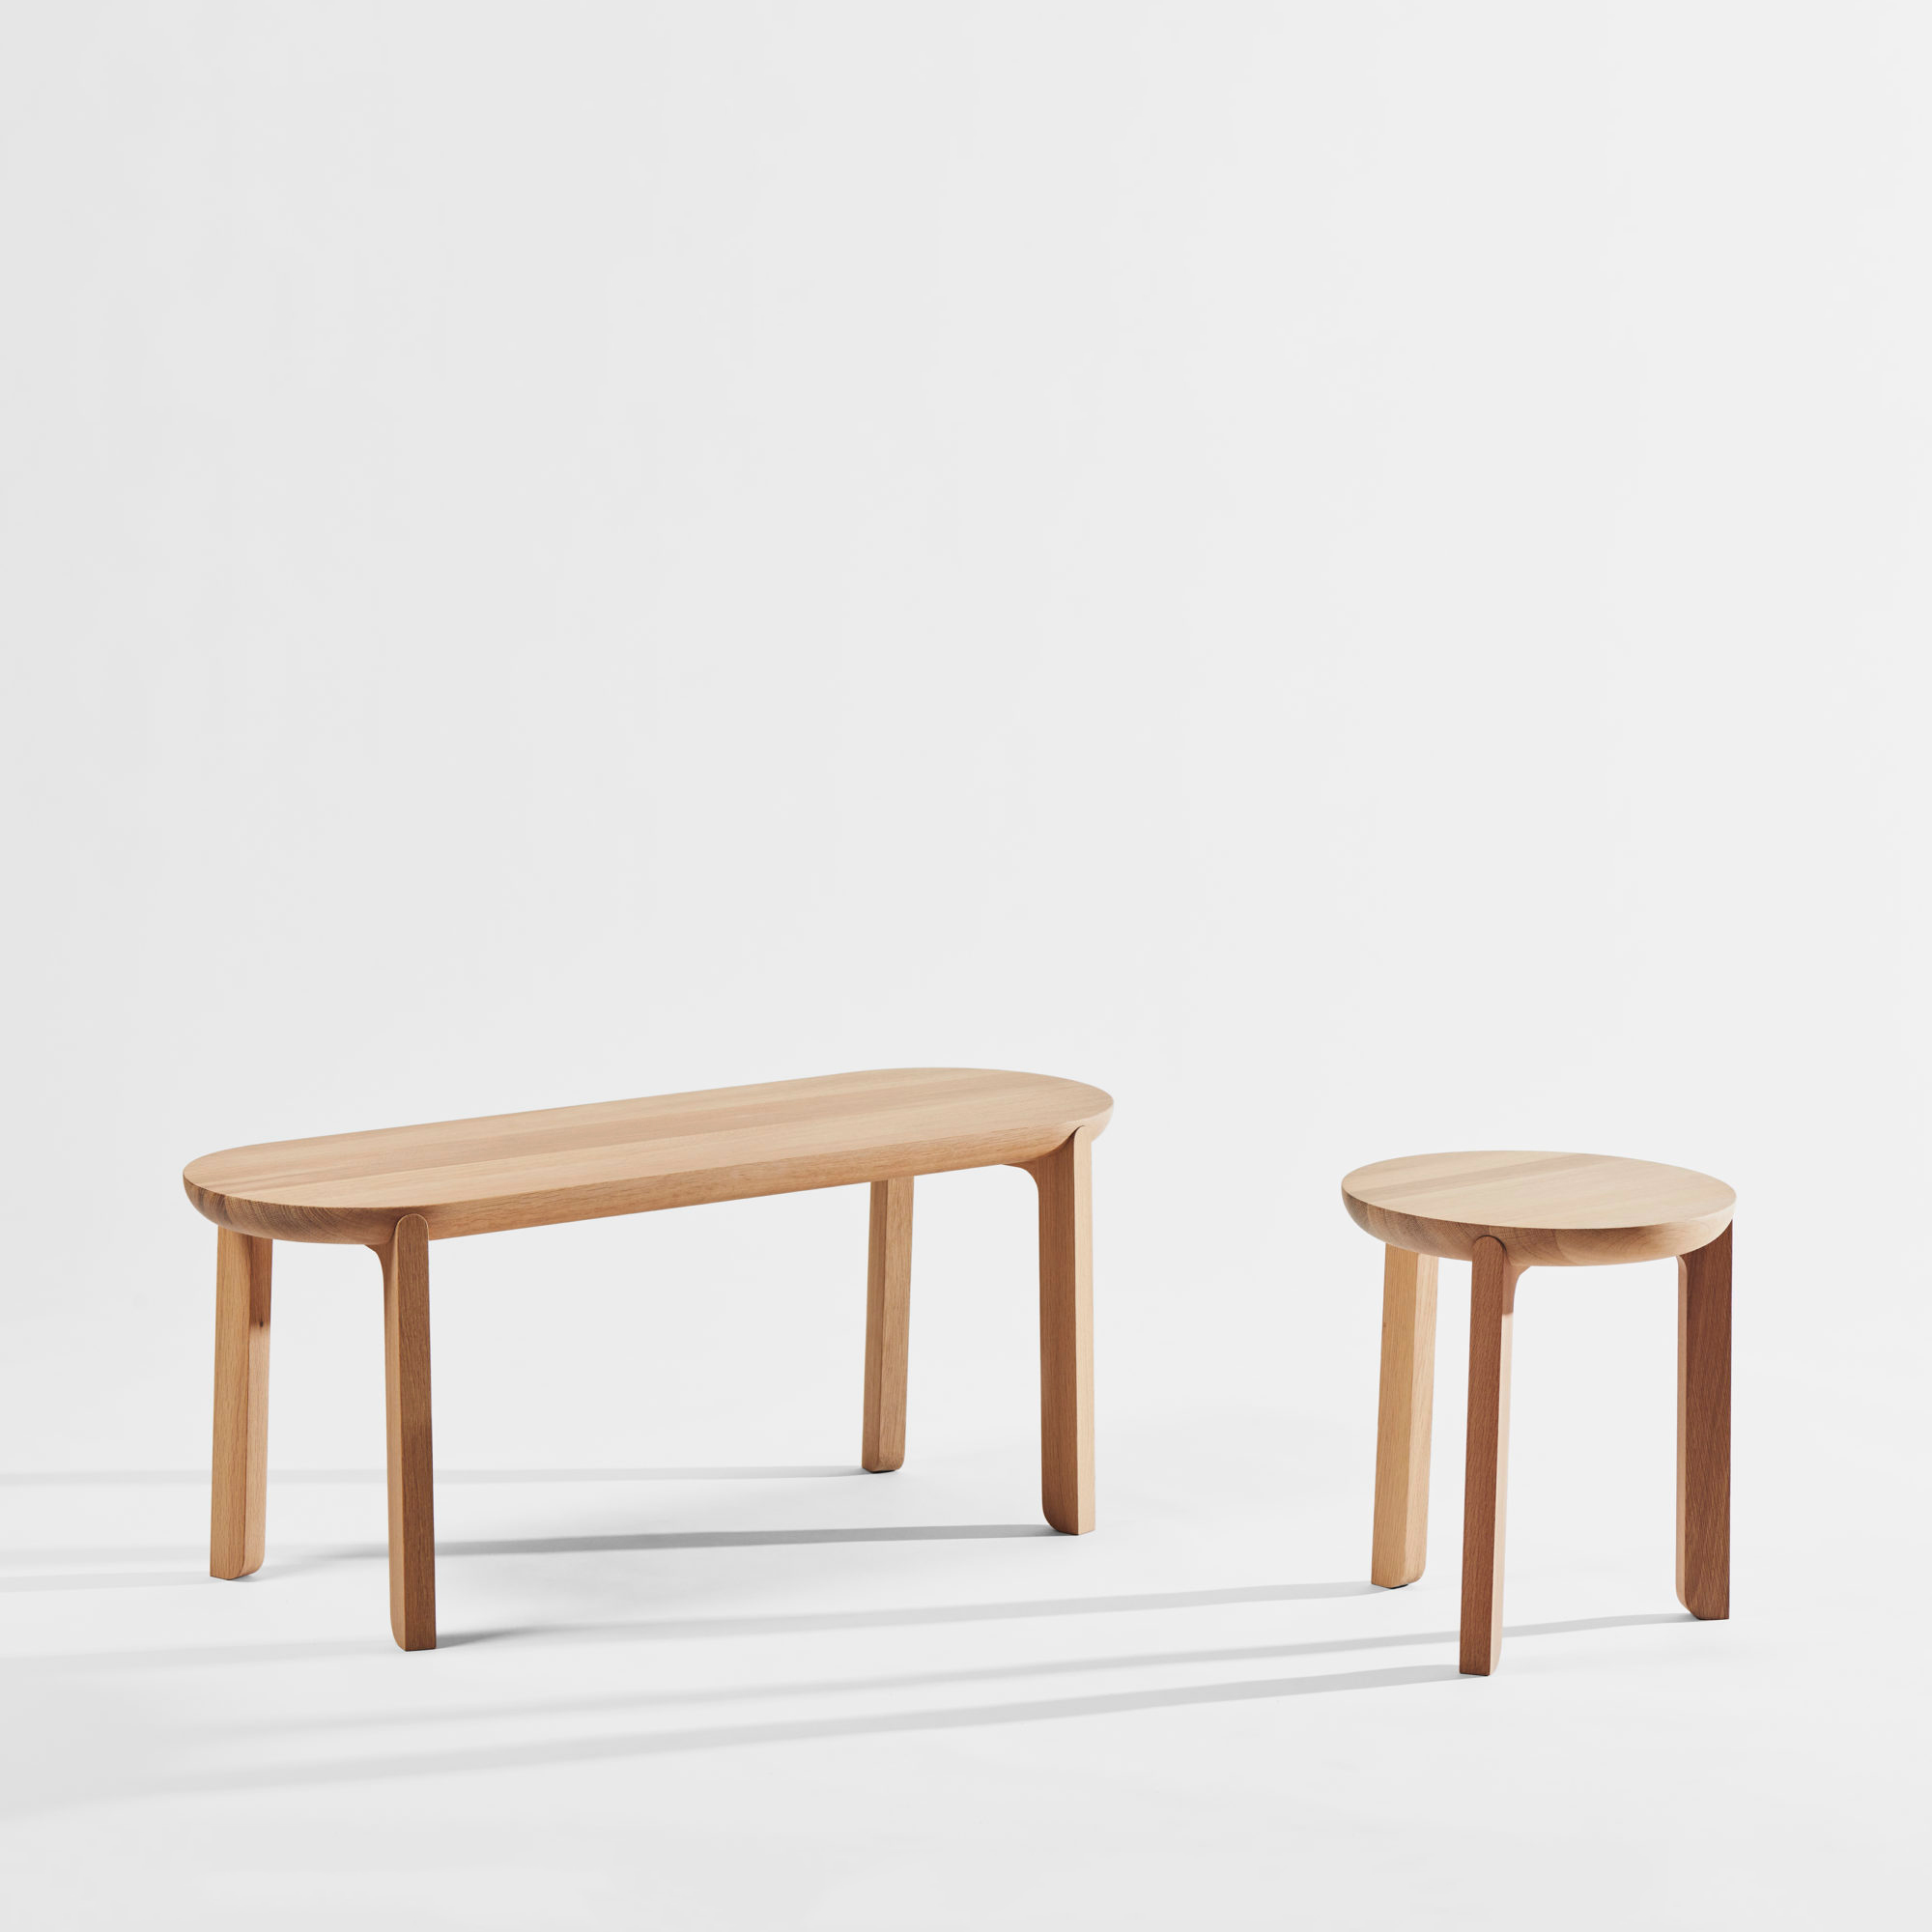 Juro Collection by Tomas Kral